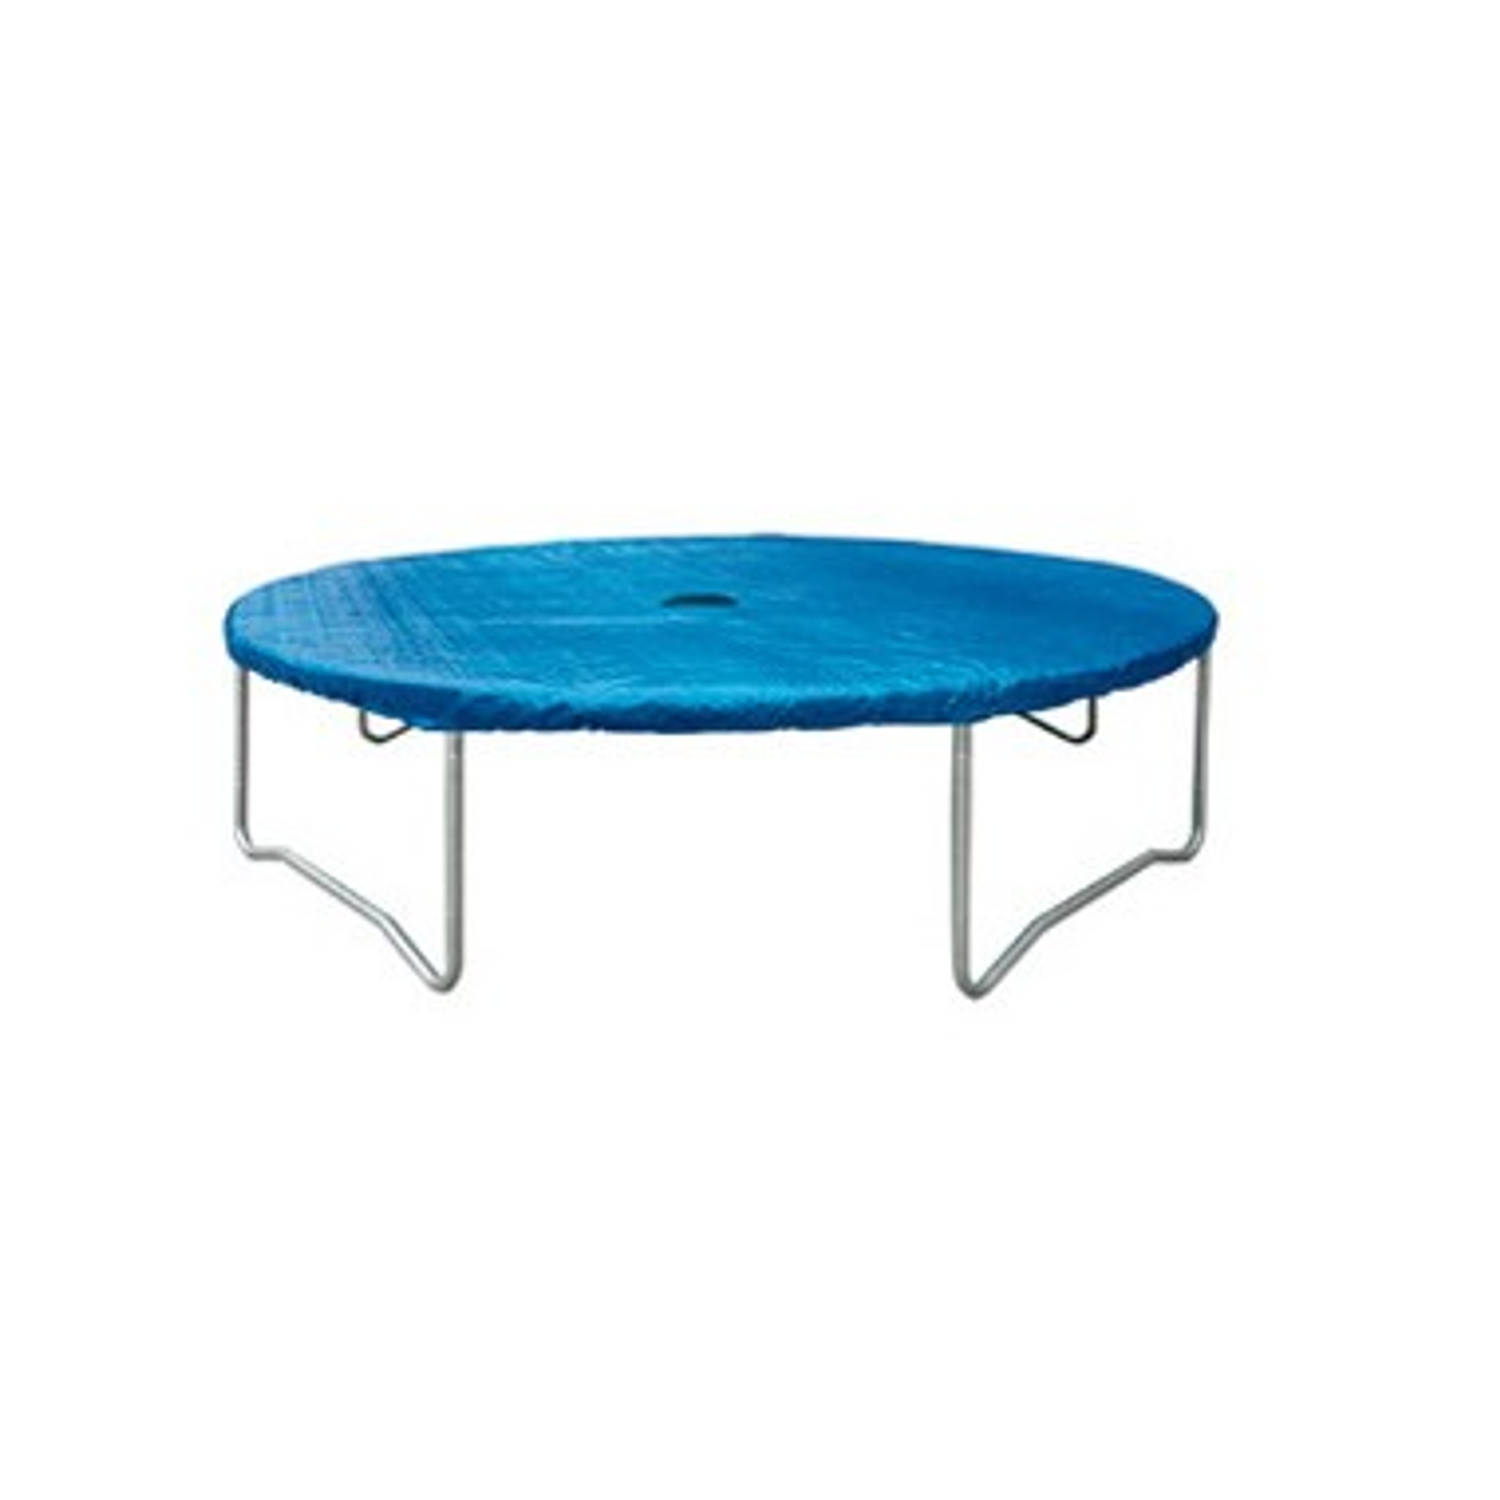 Game on Sport Mega Fun trampolinehoes - 423 cm - blauw